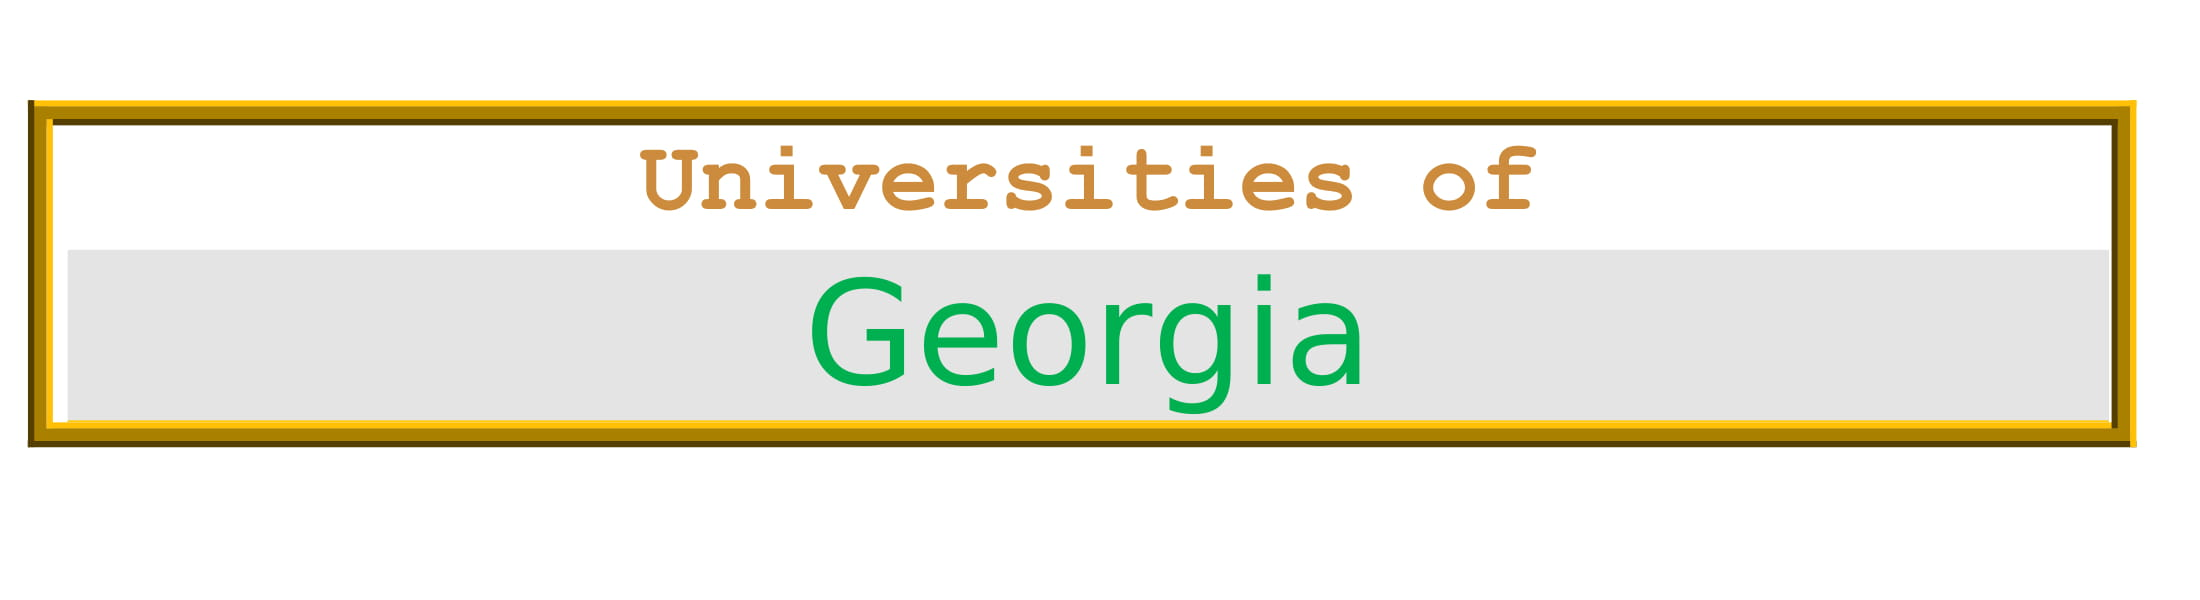 List of Universities in Georgia